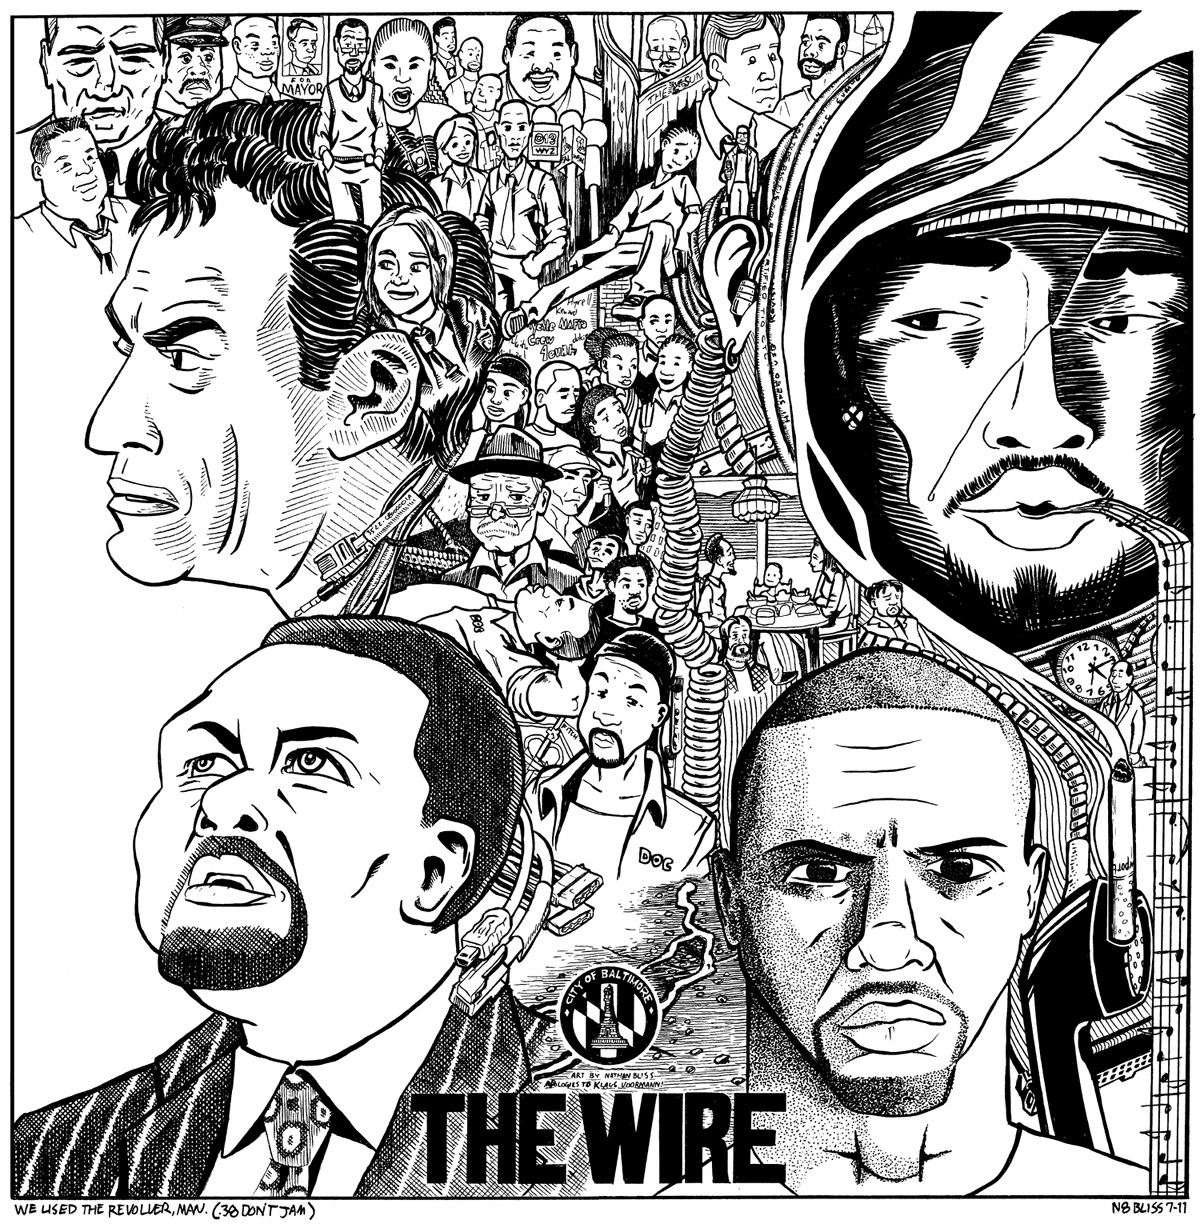 n8bliss art: A Mash-up of a different kind: The Wire vs. The Beatles